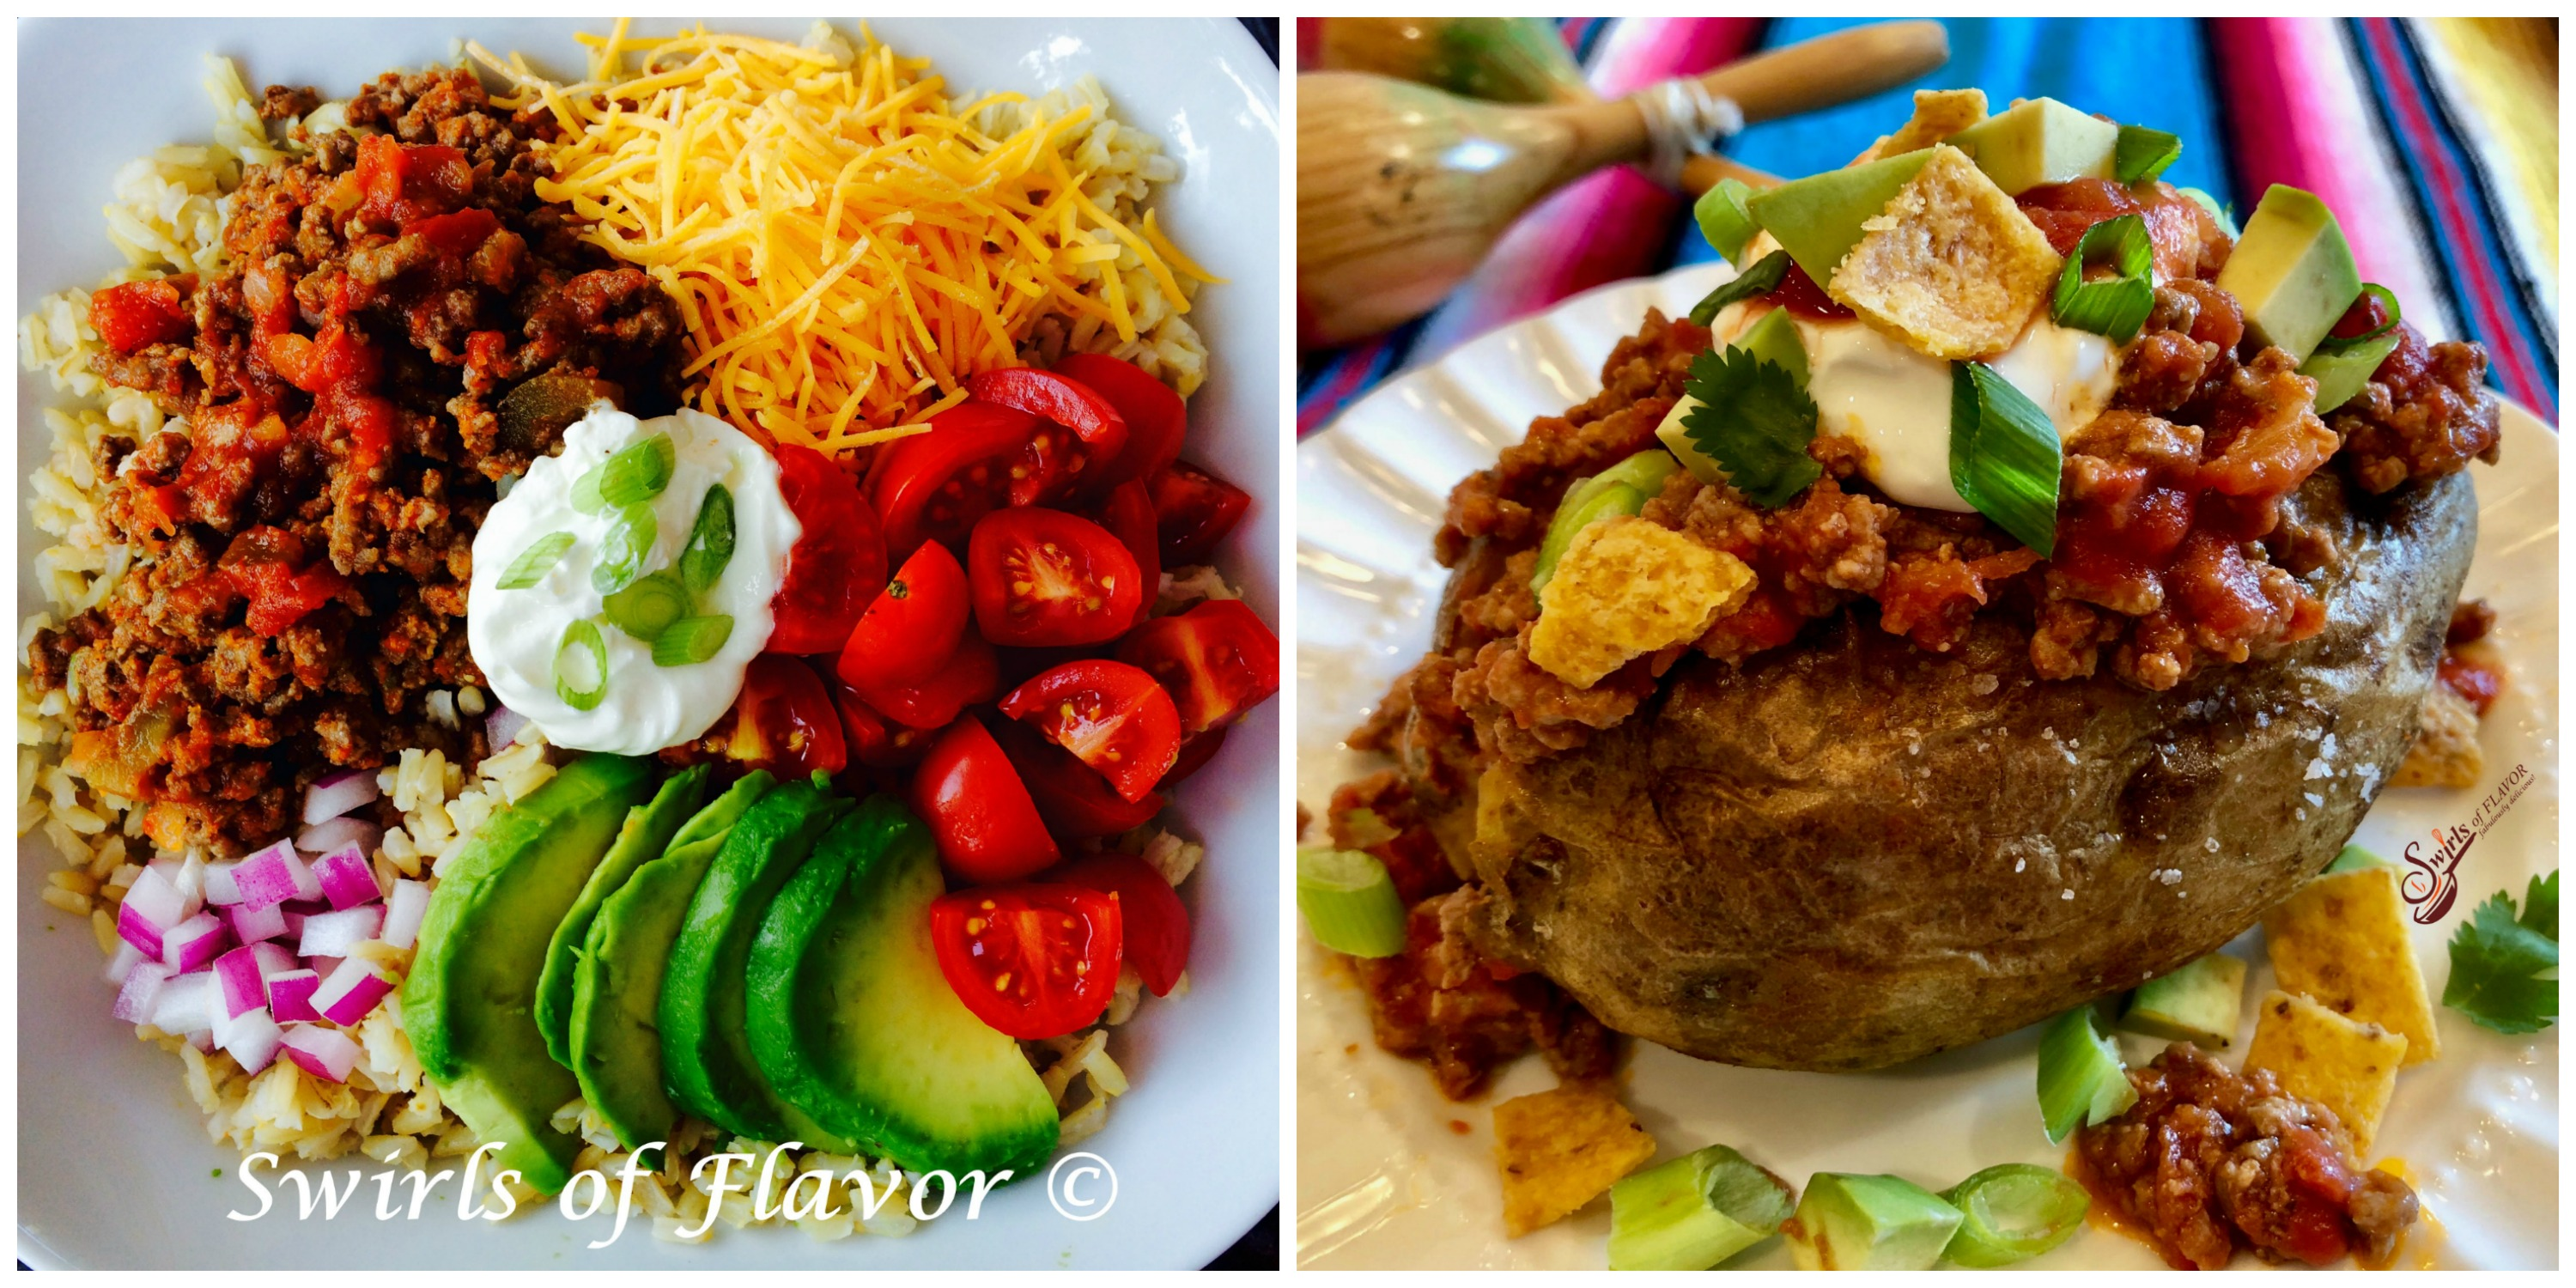 Taco Bowl and Taco Stuffed Potato